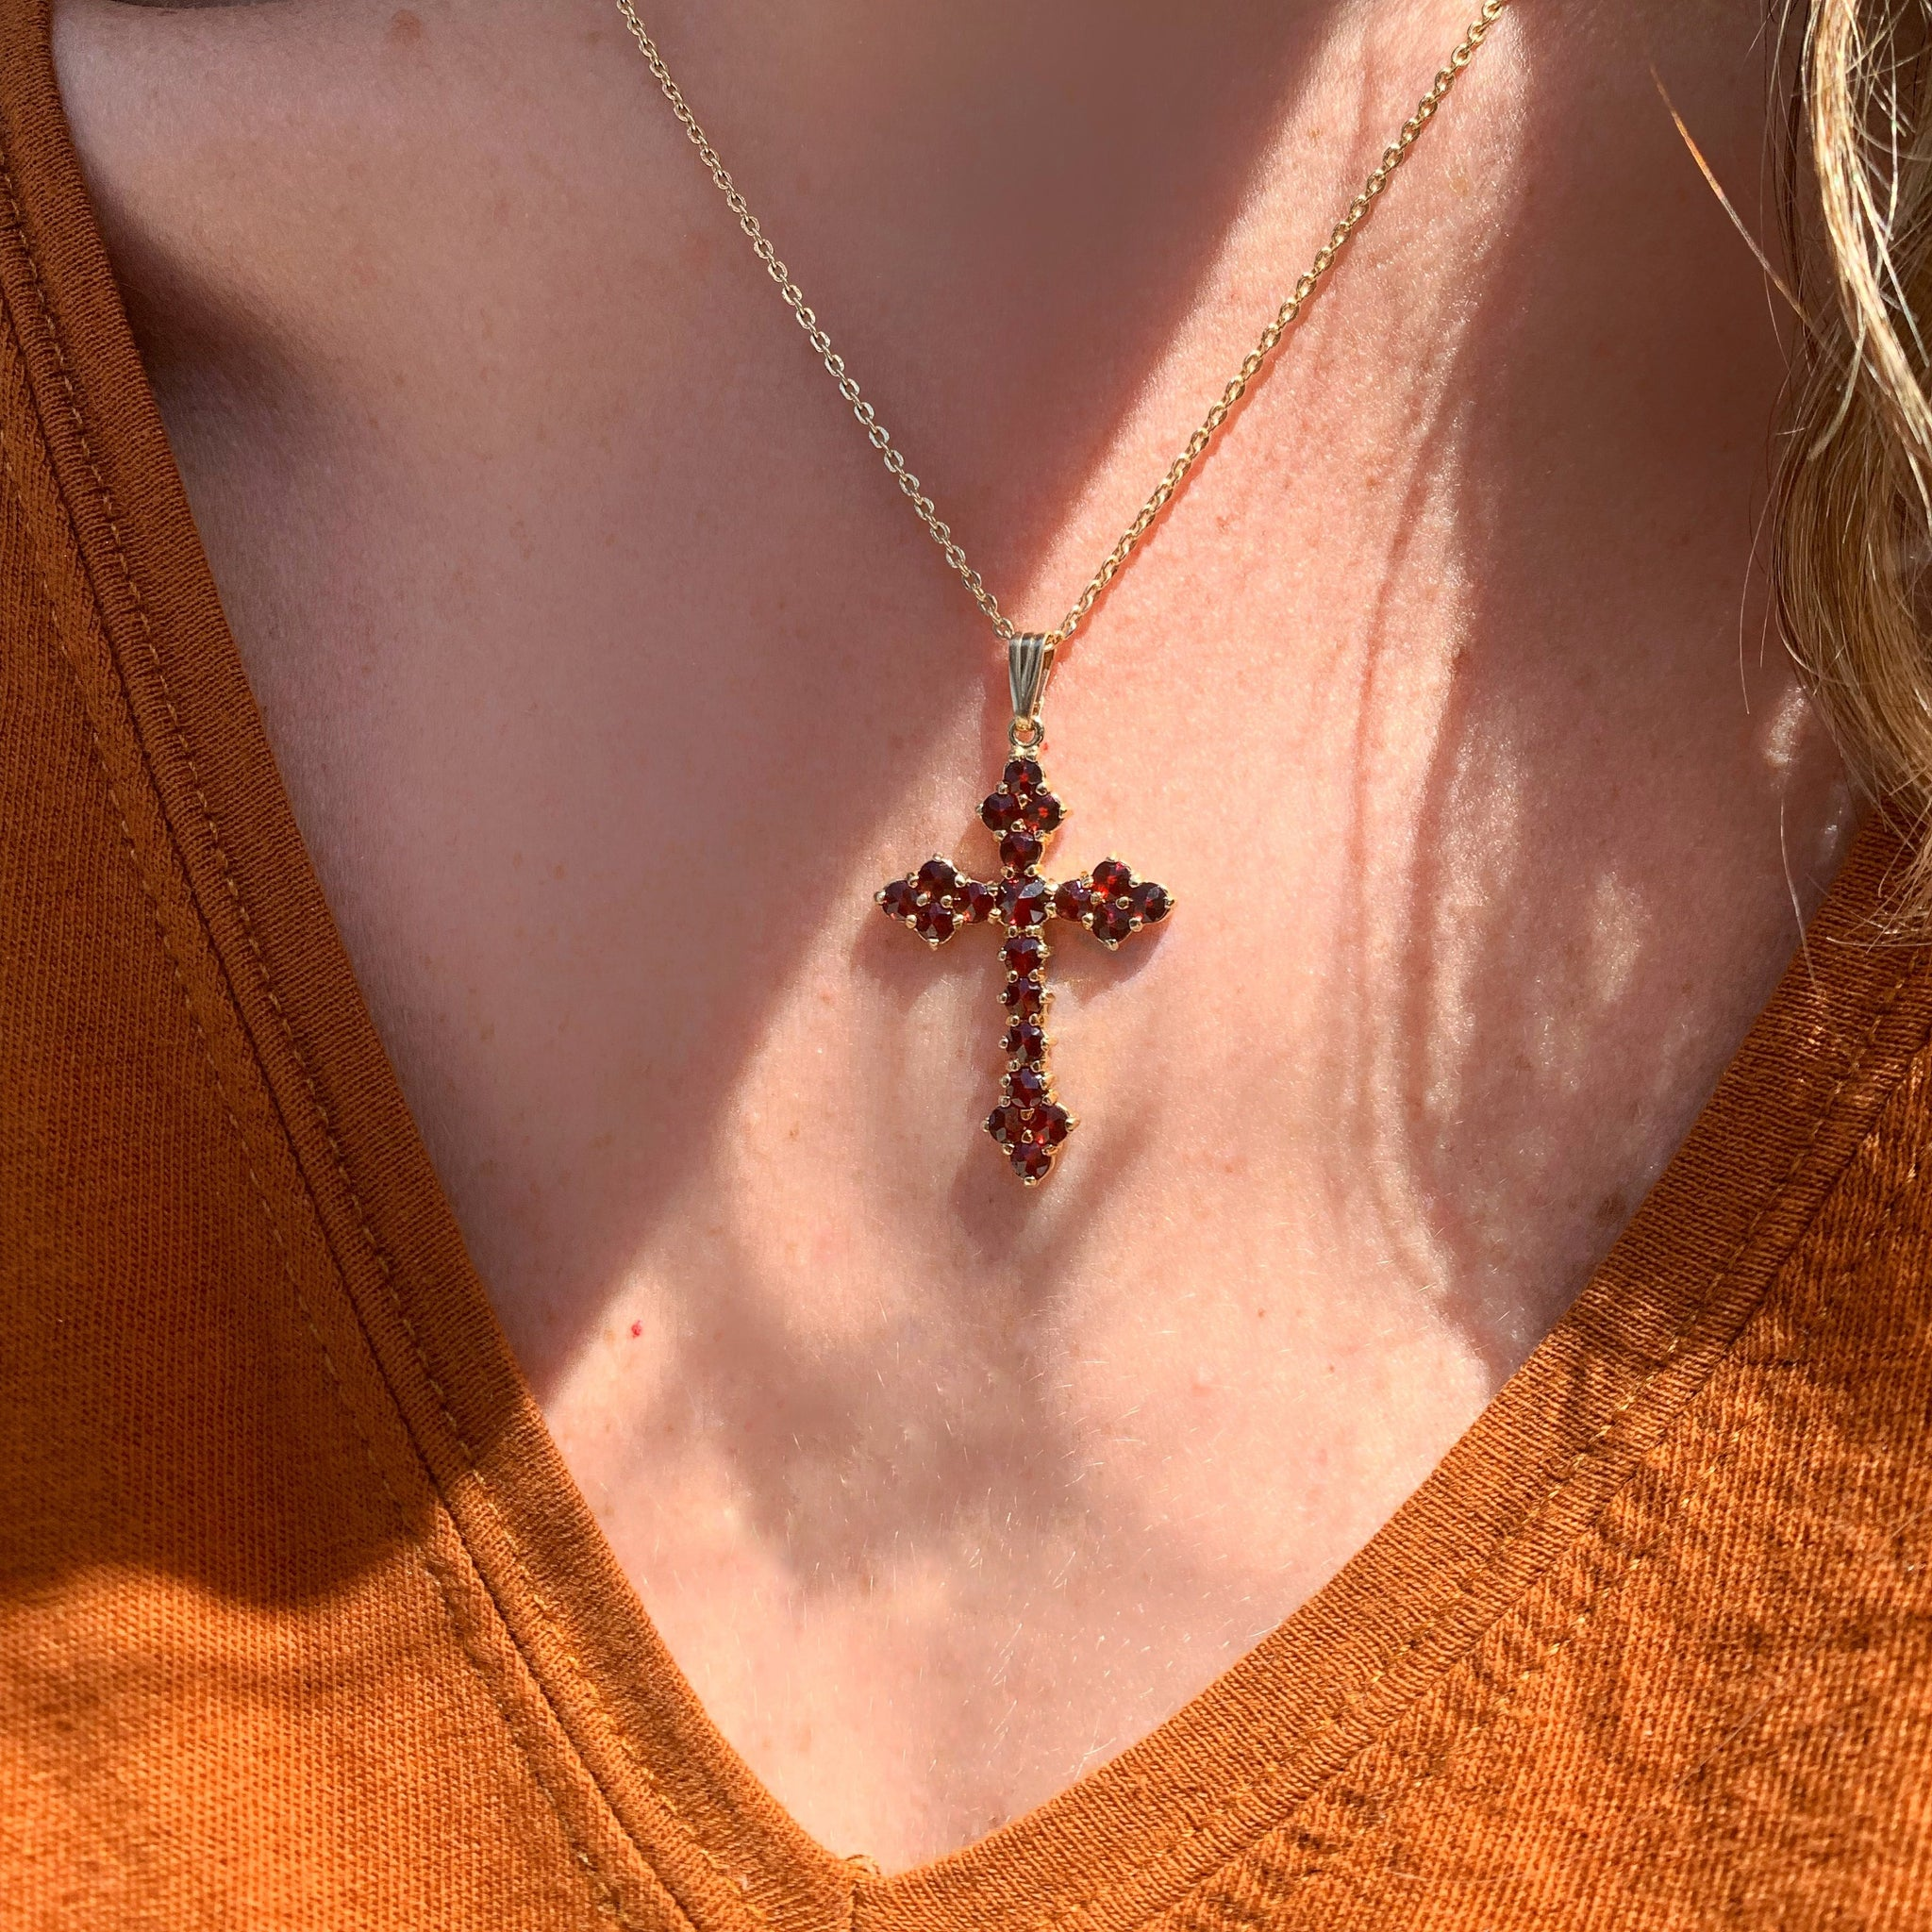 Survivor Cross - 14k Yellow Gold Garnet Cross Pendant